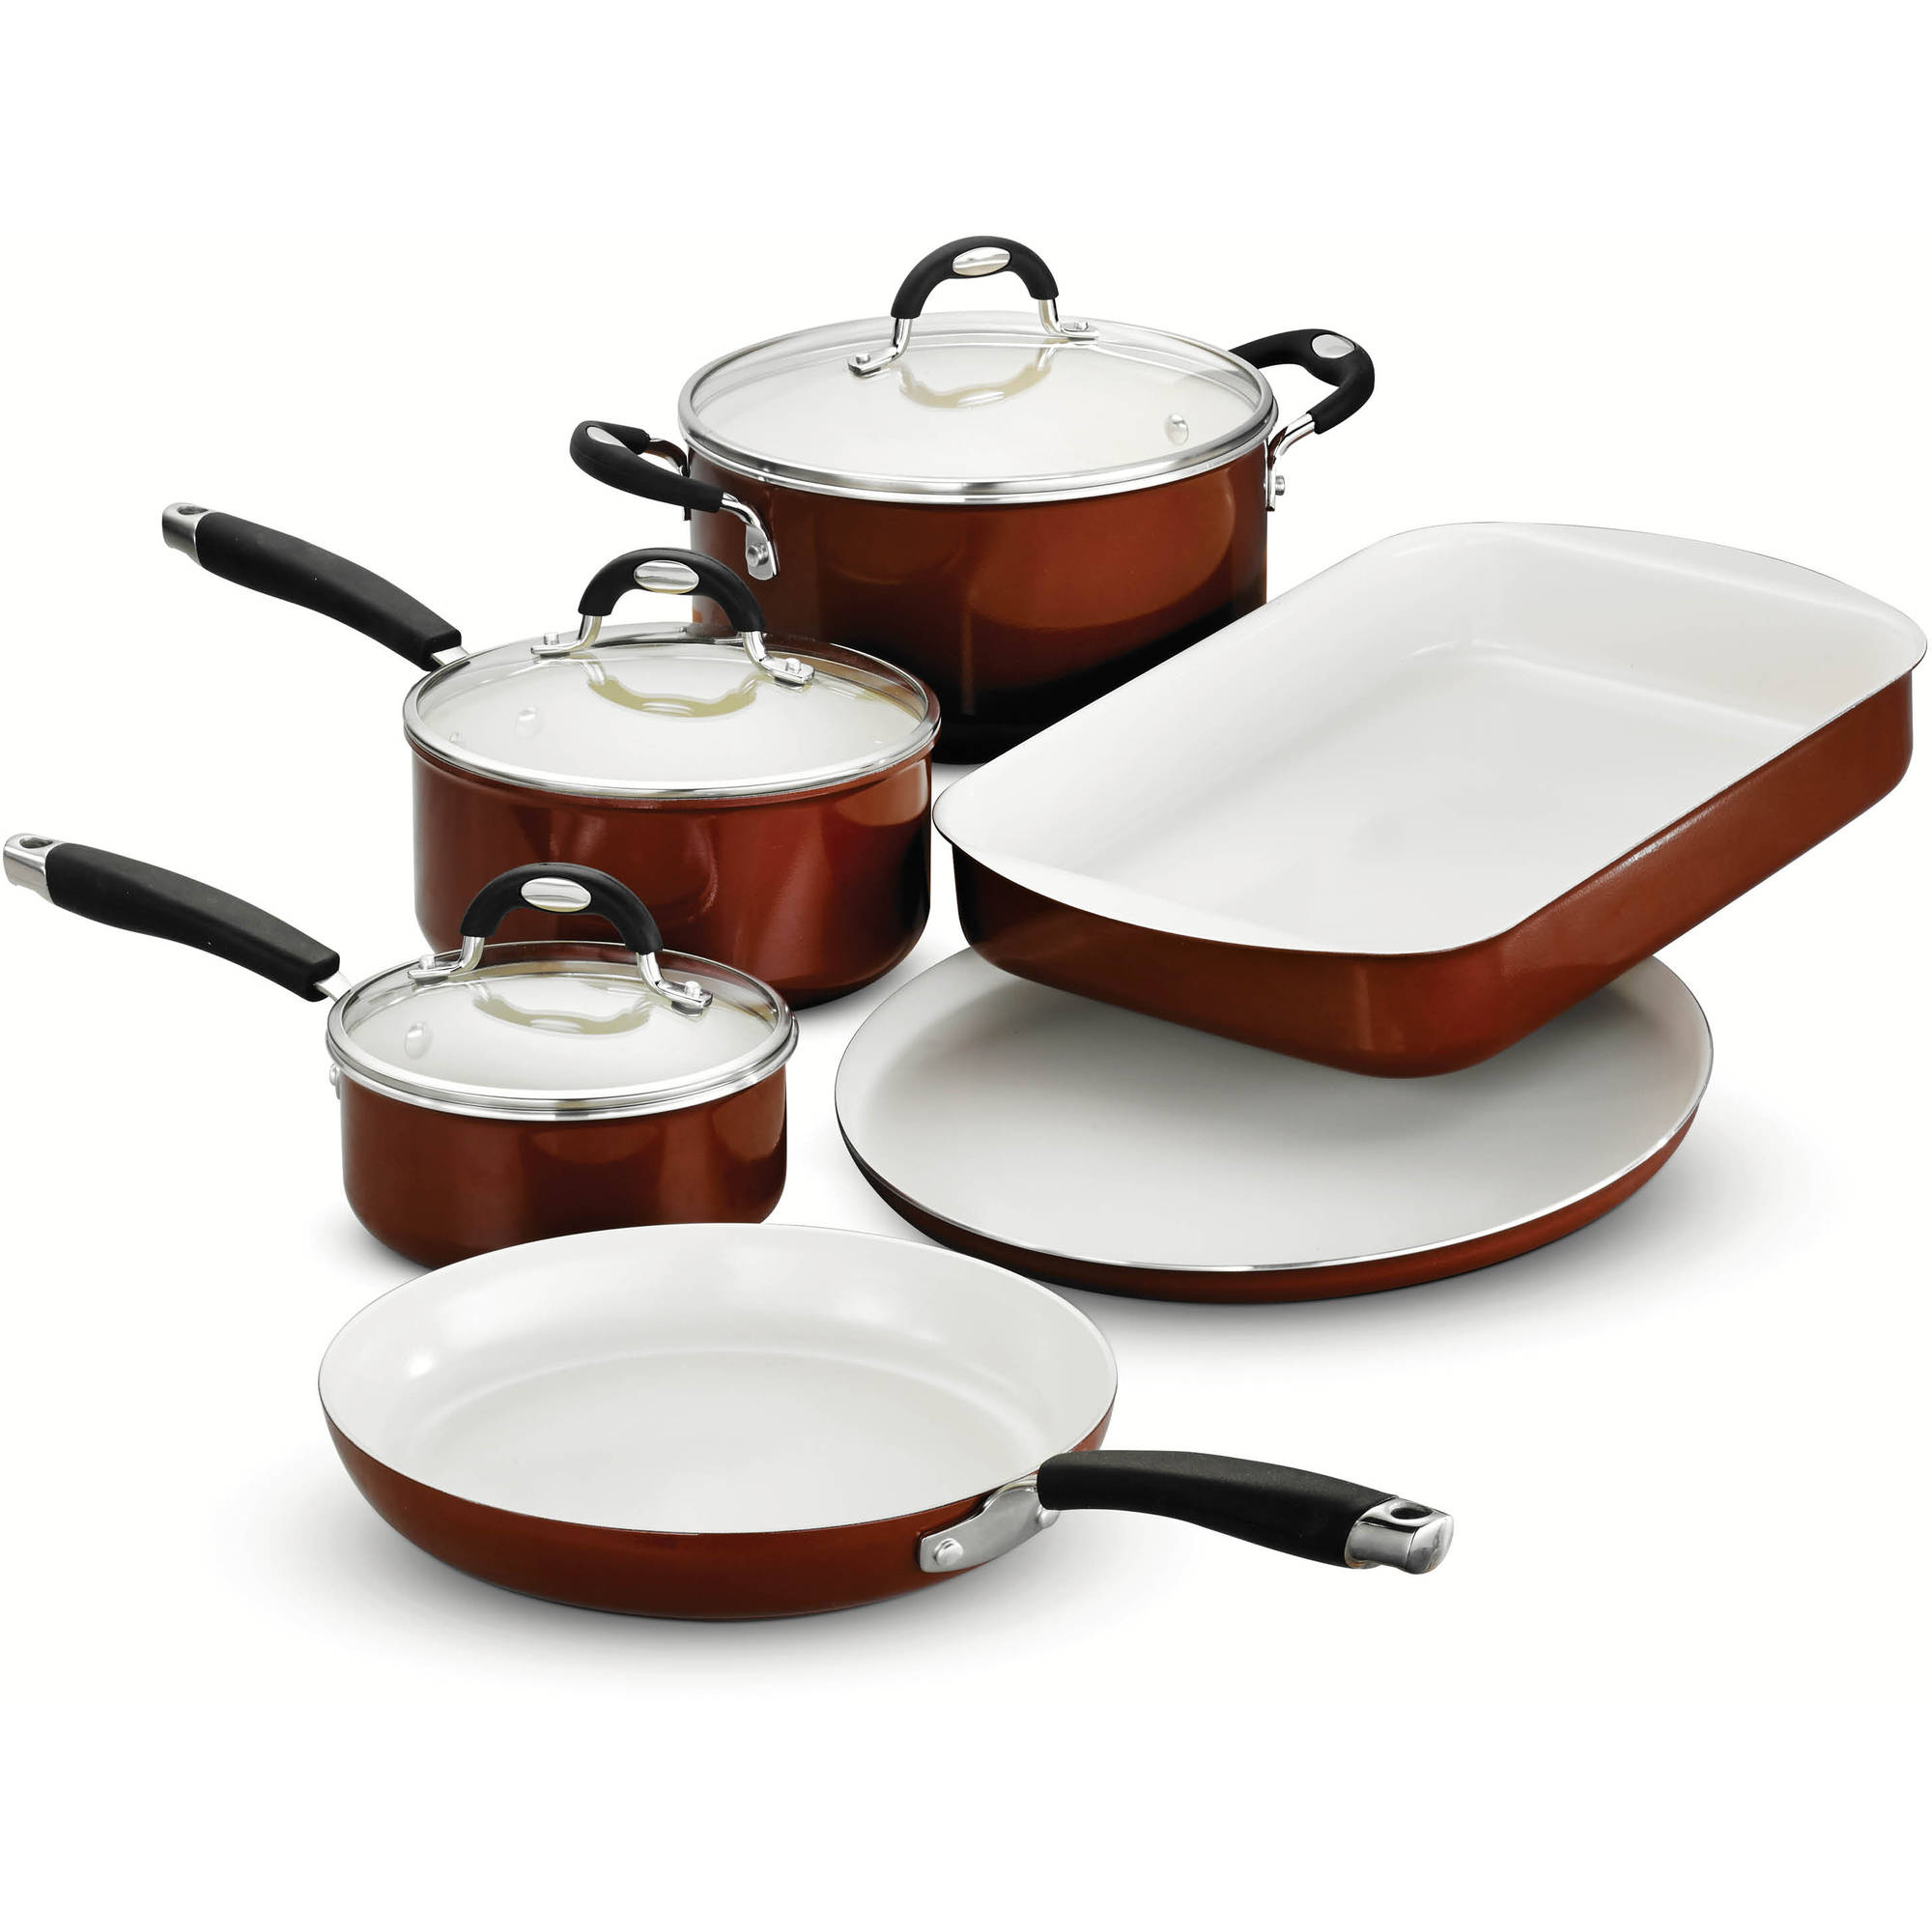 Tramontina Style 9-Piece Cookware/Bakeware Set, Metallic Copper